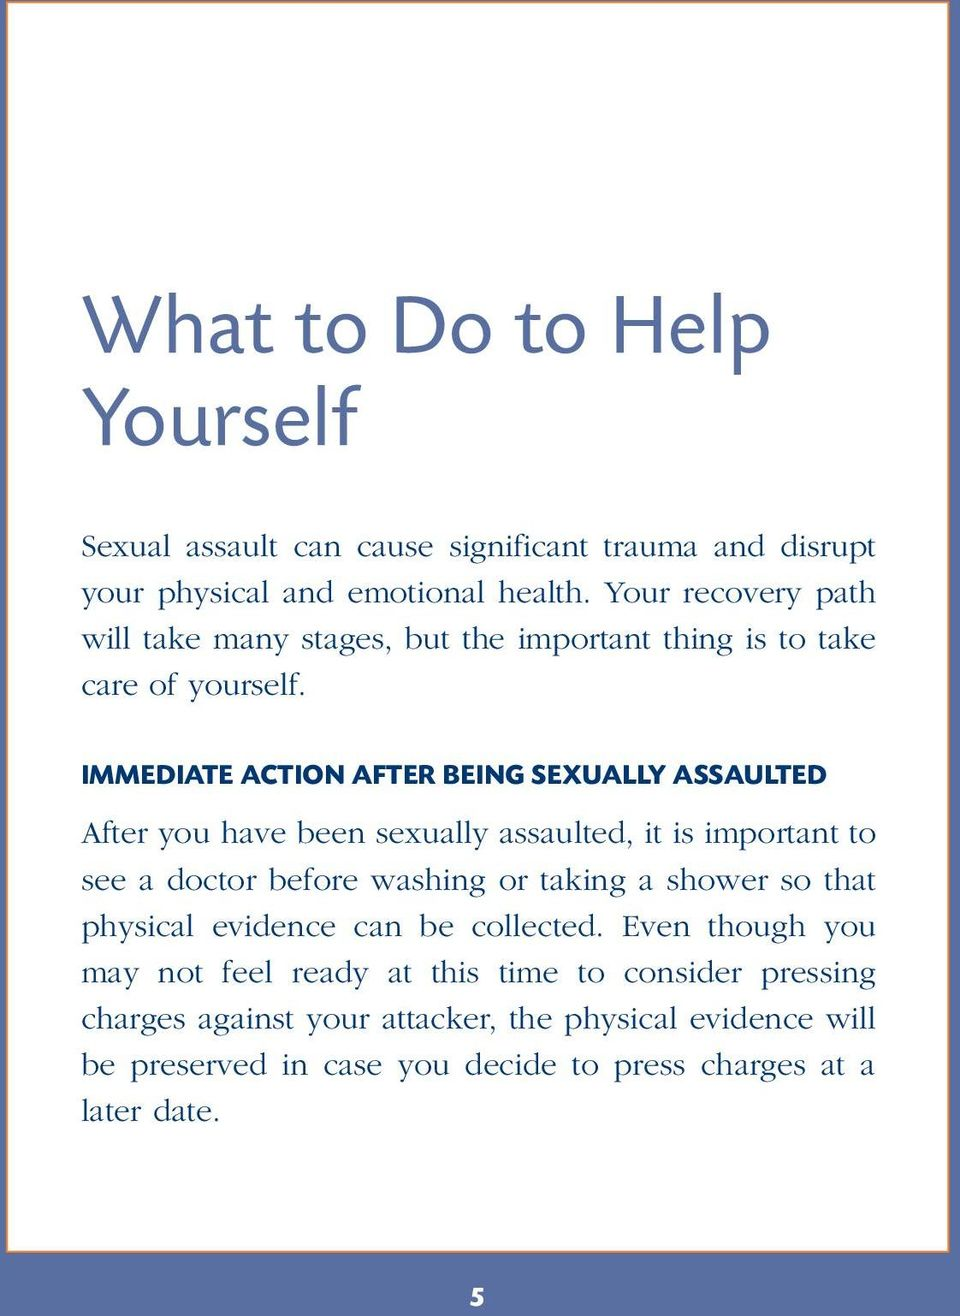 IMMEDIATE ACTION AFTER BEING SEXUALLY ASSAULTED After you have been sexually assaulted, it is important to see a doctor before washing or taking a